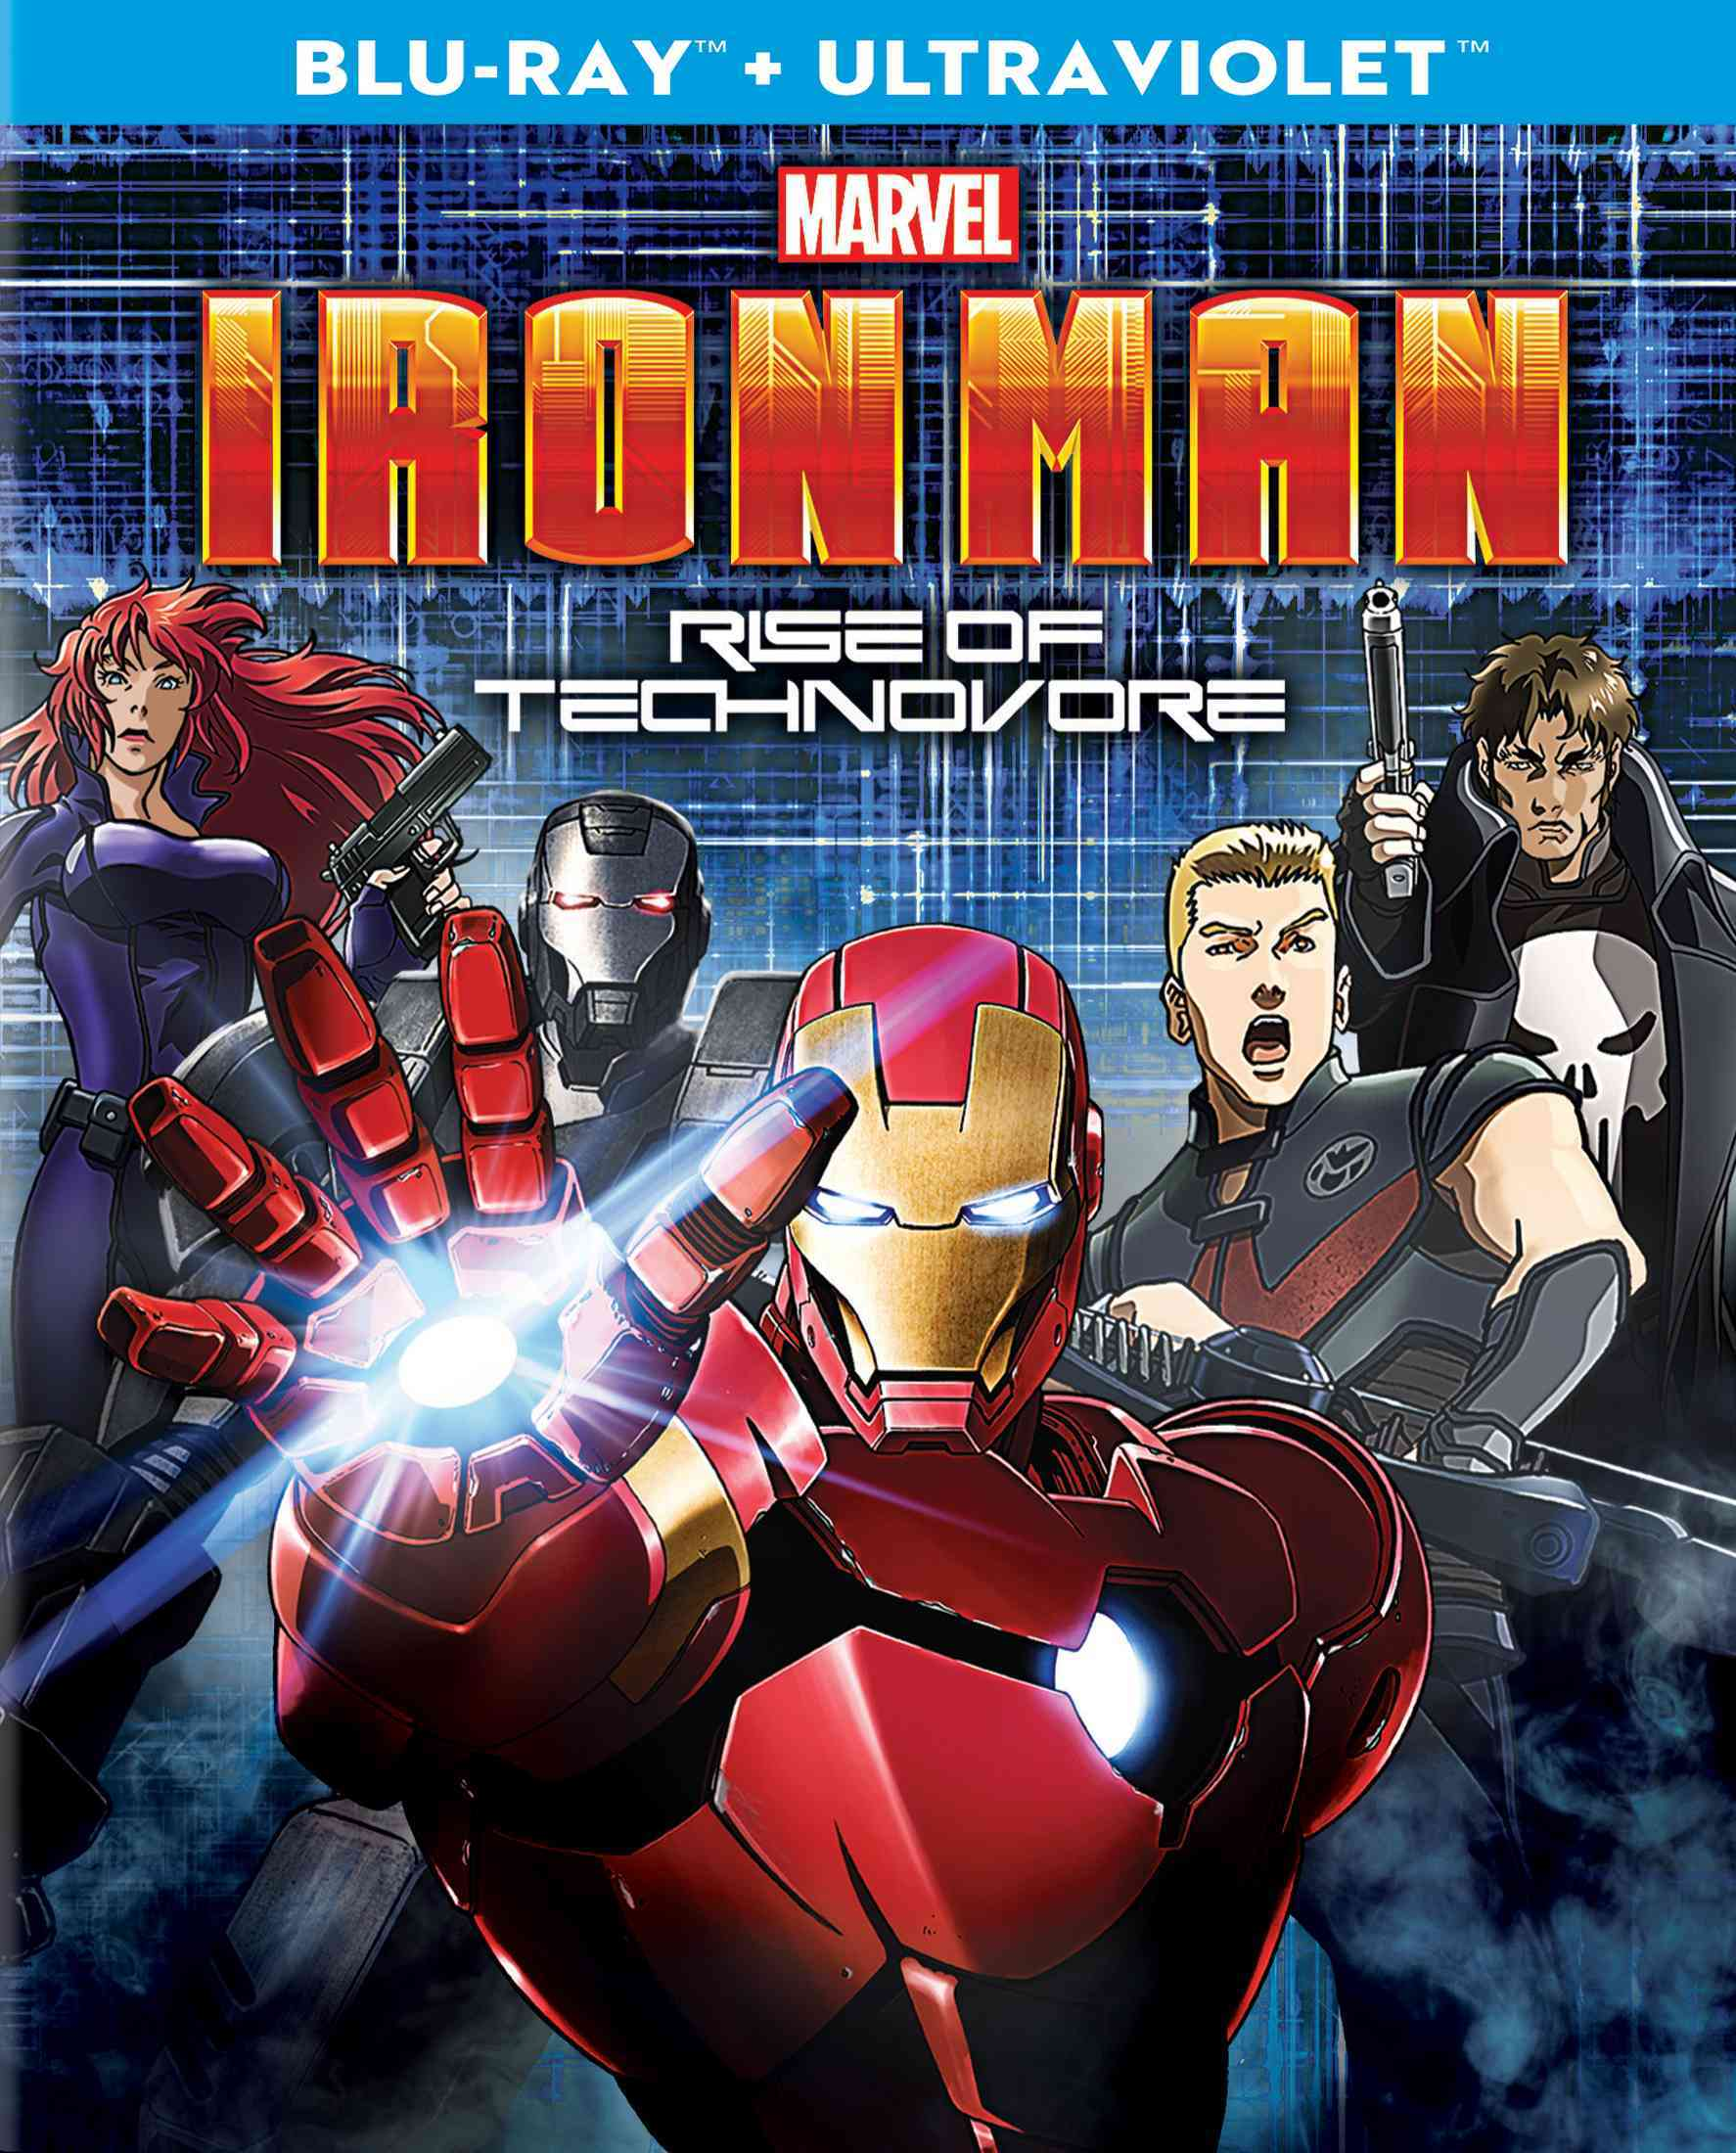 IRON MAN:RISE OF THE TECHNOVORE BY IRON MAN (Blu-Ray)